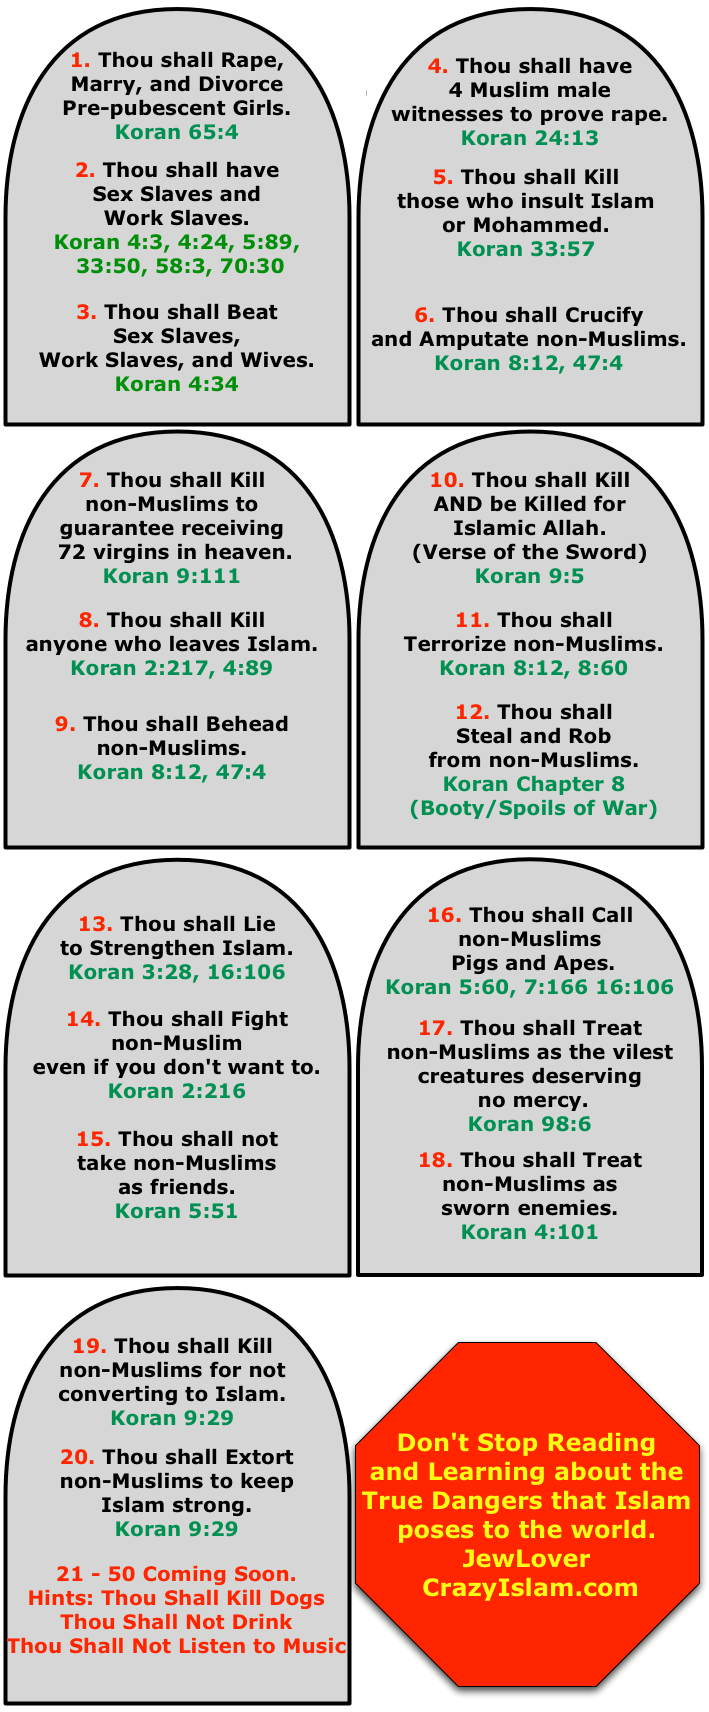 Muslim_commandments